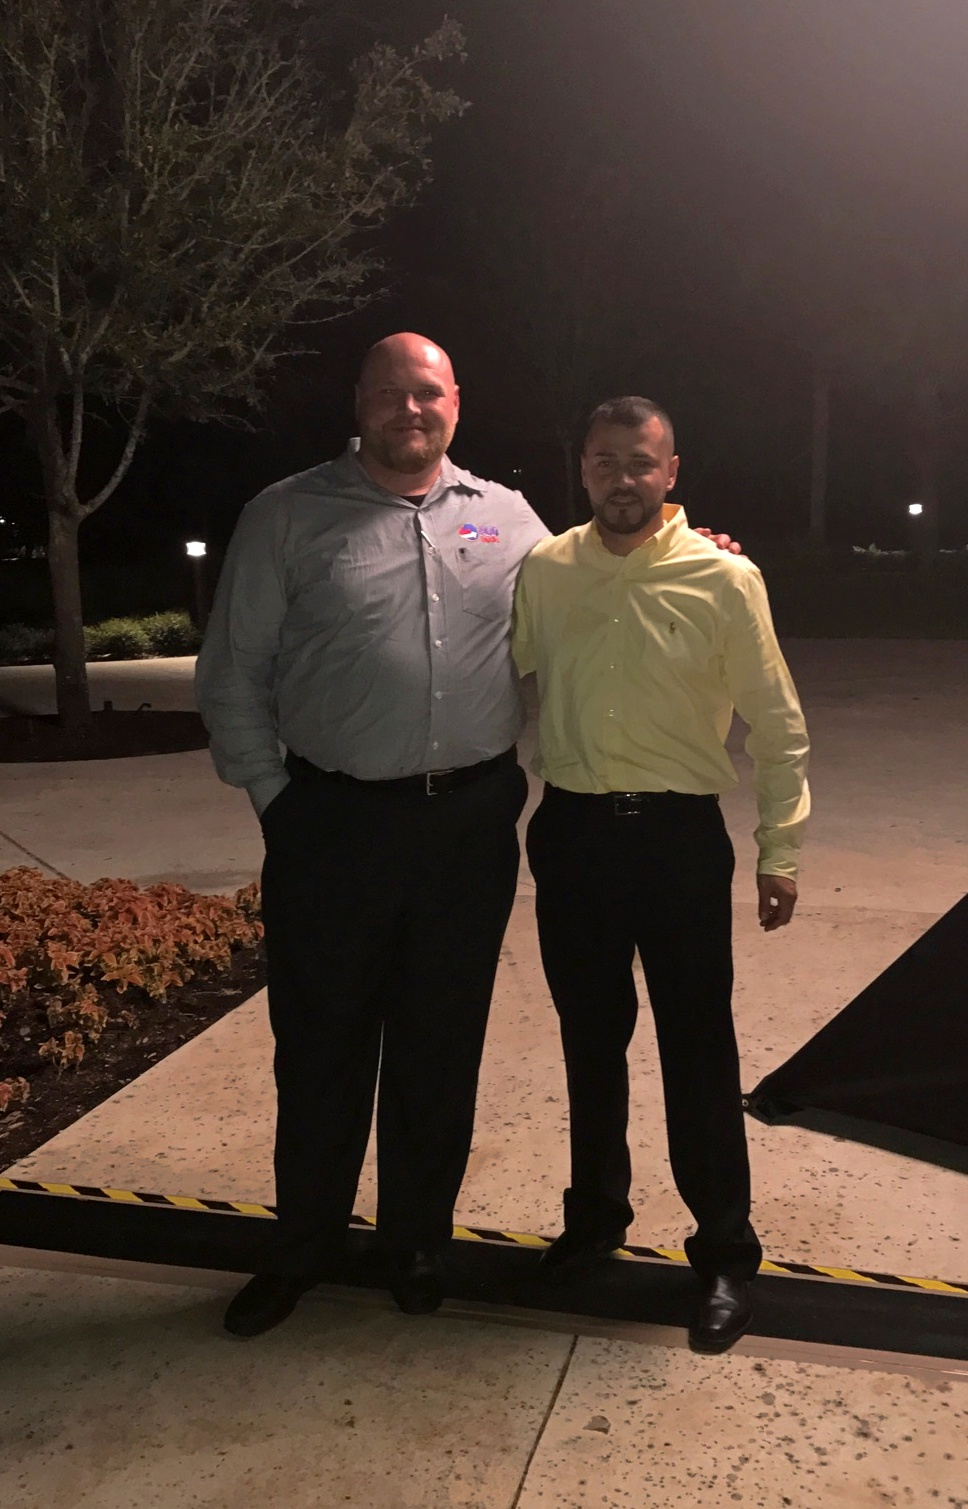 Josh Daniels & Fernando Garcia attending the Furniture World conference in Orlando, FL.